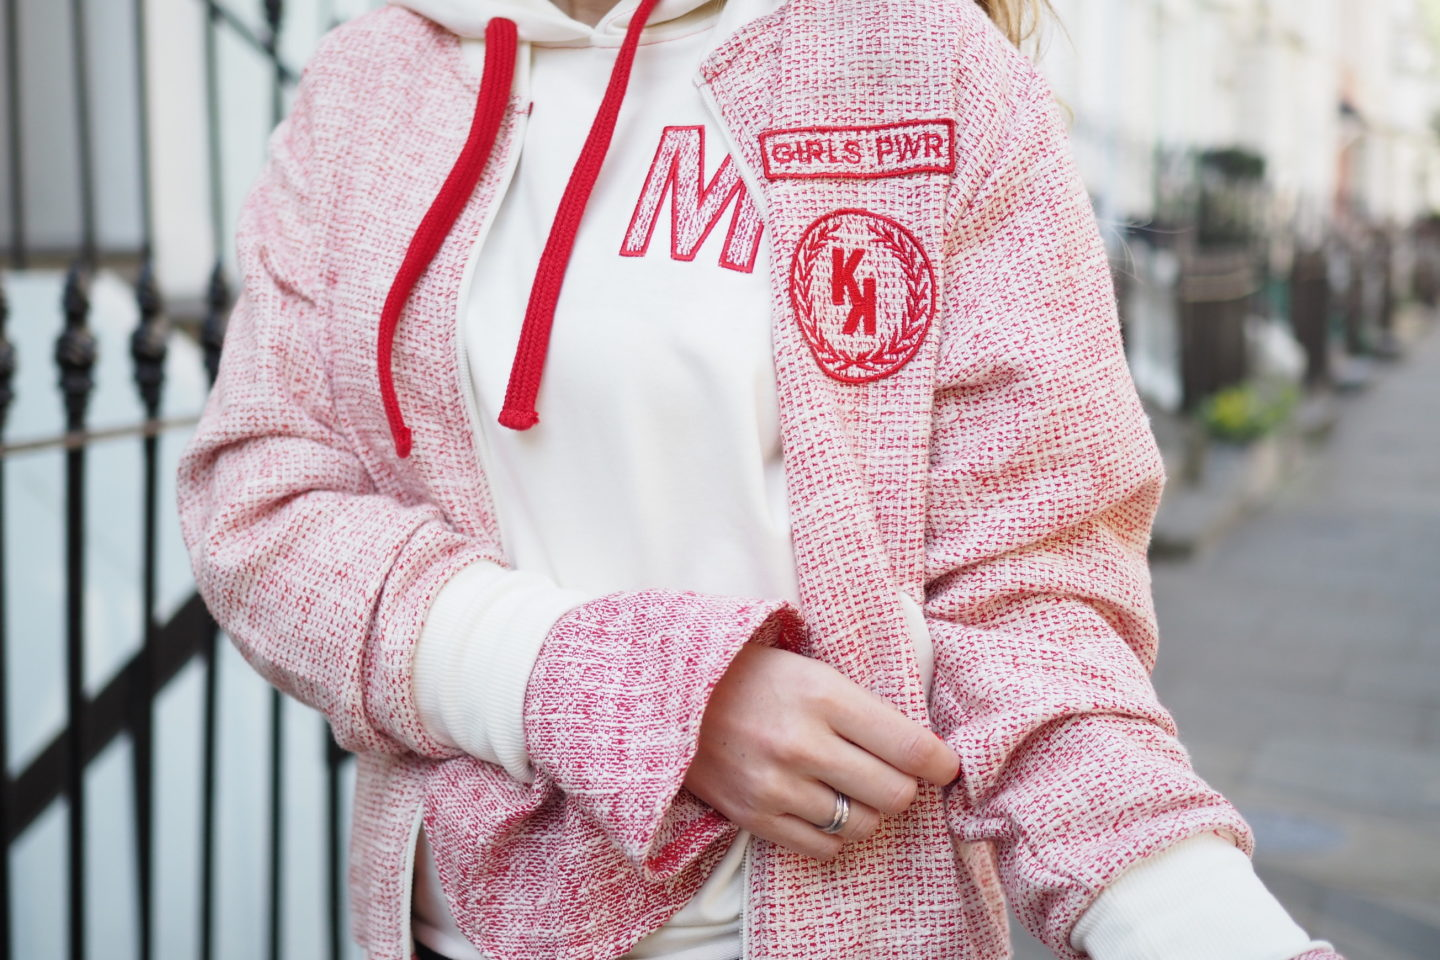 medkkes-fashion-street-style-it-girls